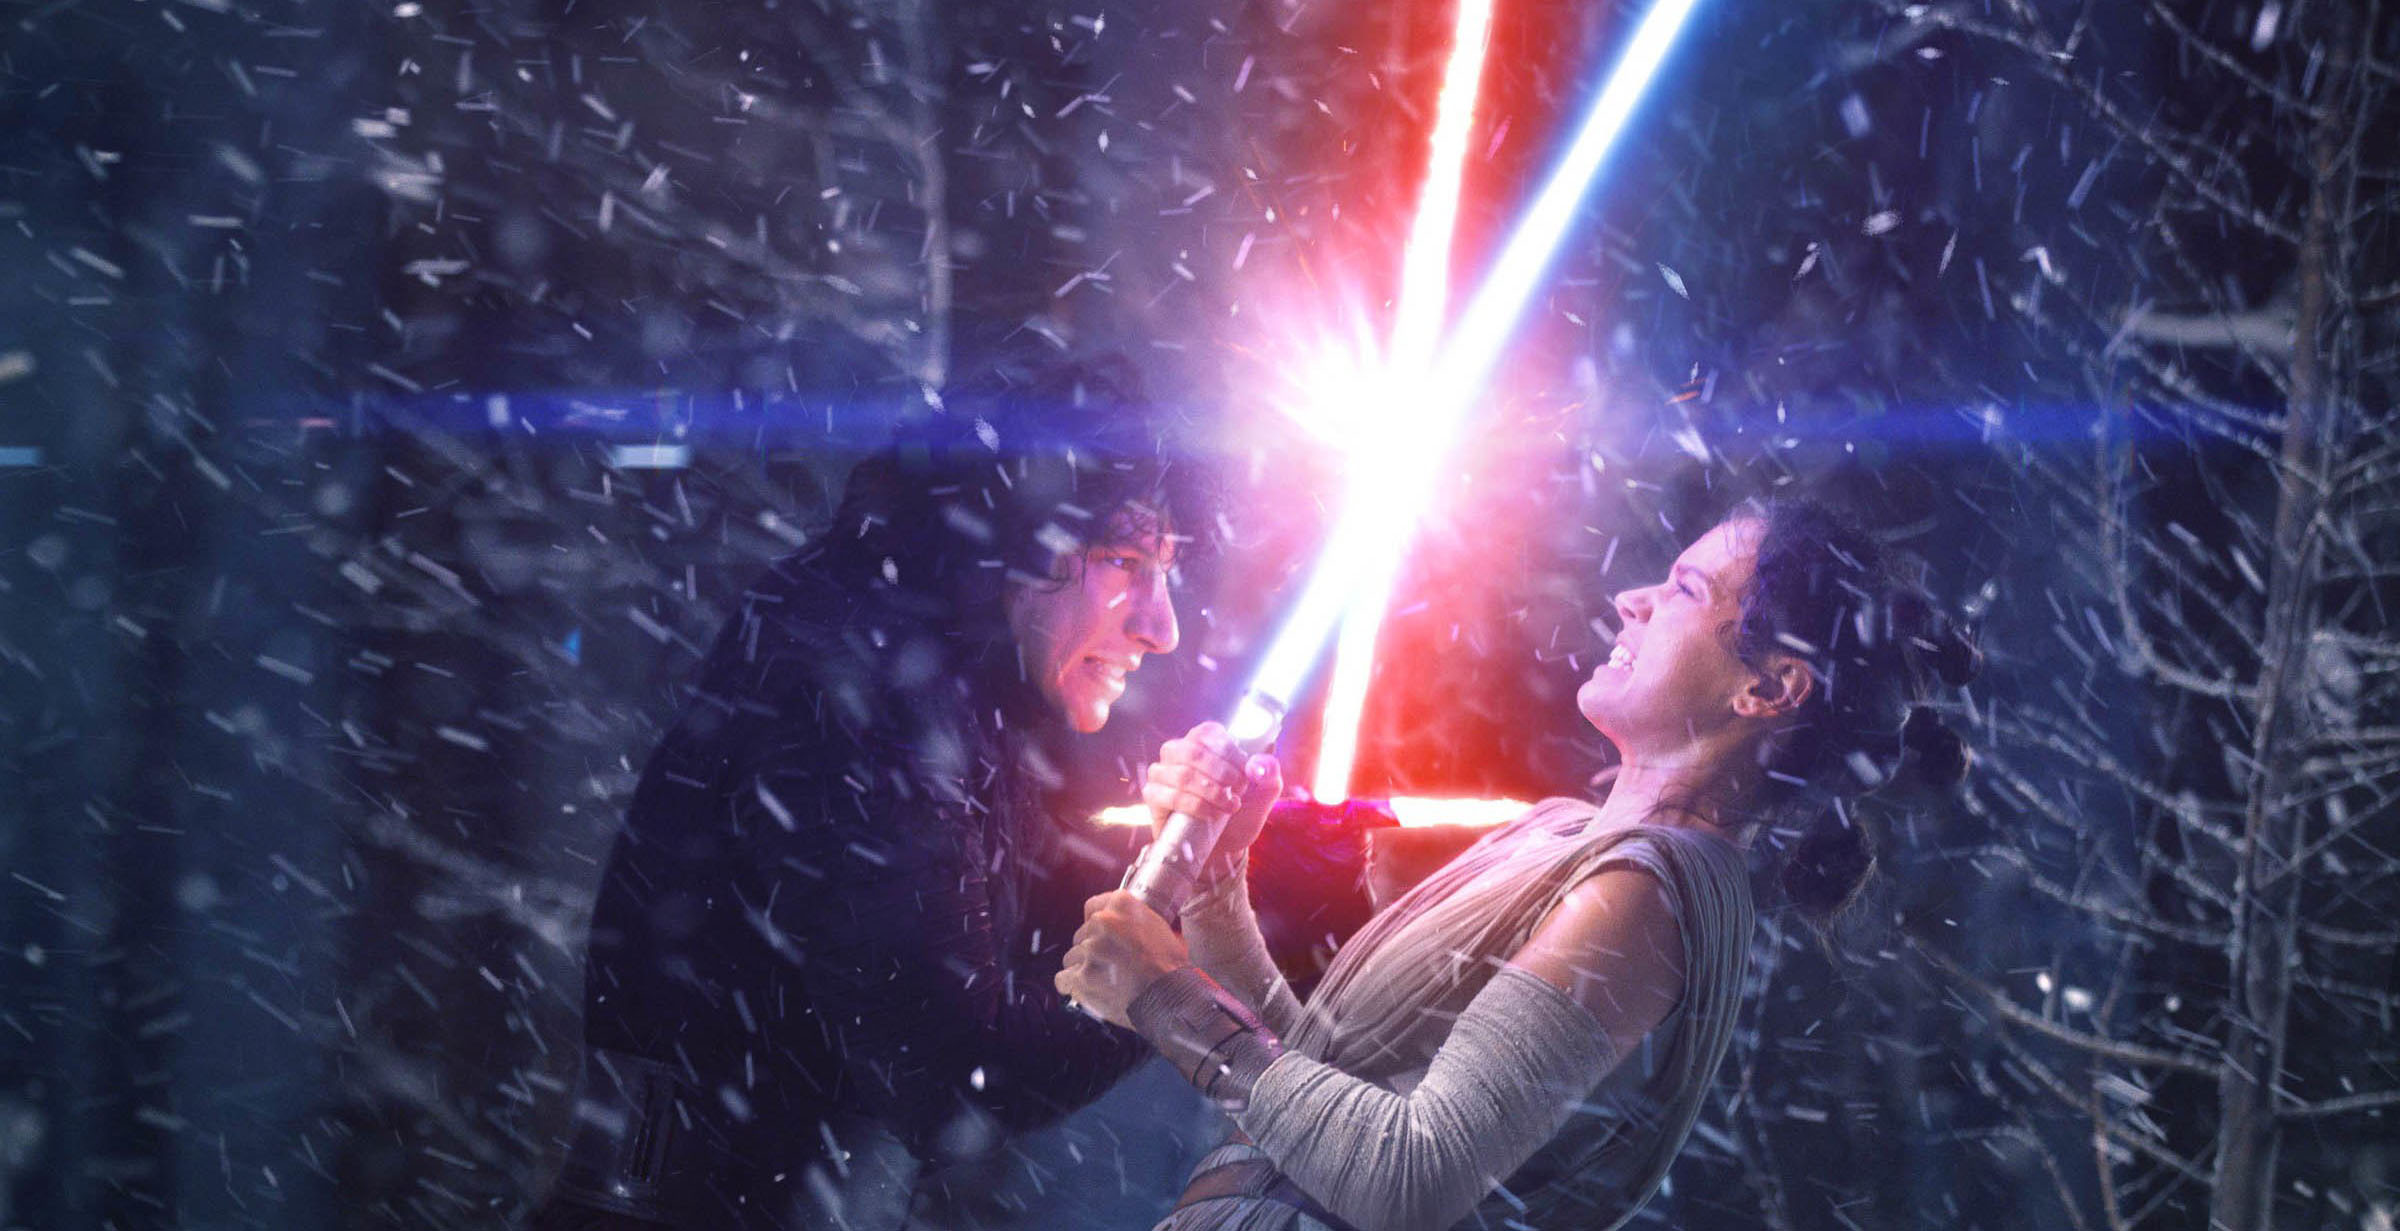 Star Wars The Force Awakens Kylo vs. Rey